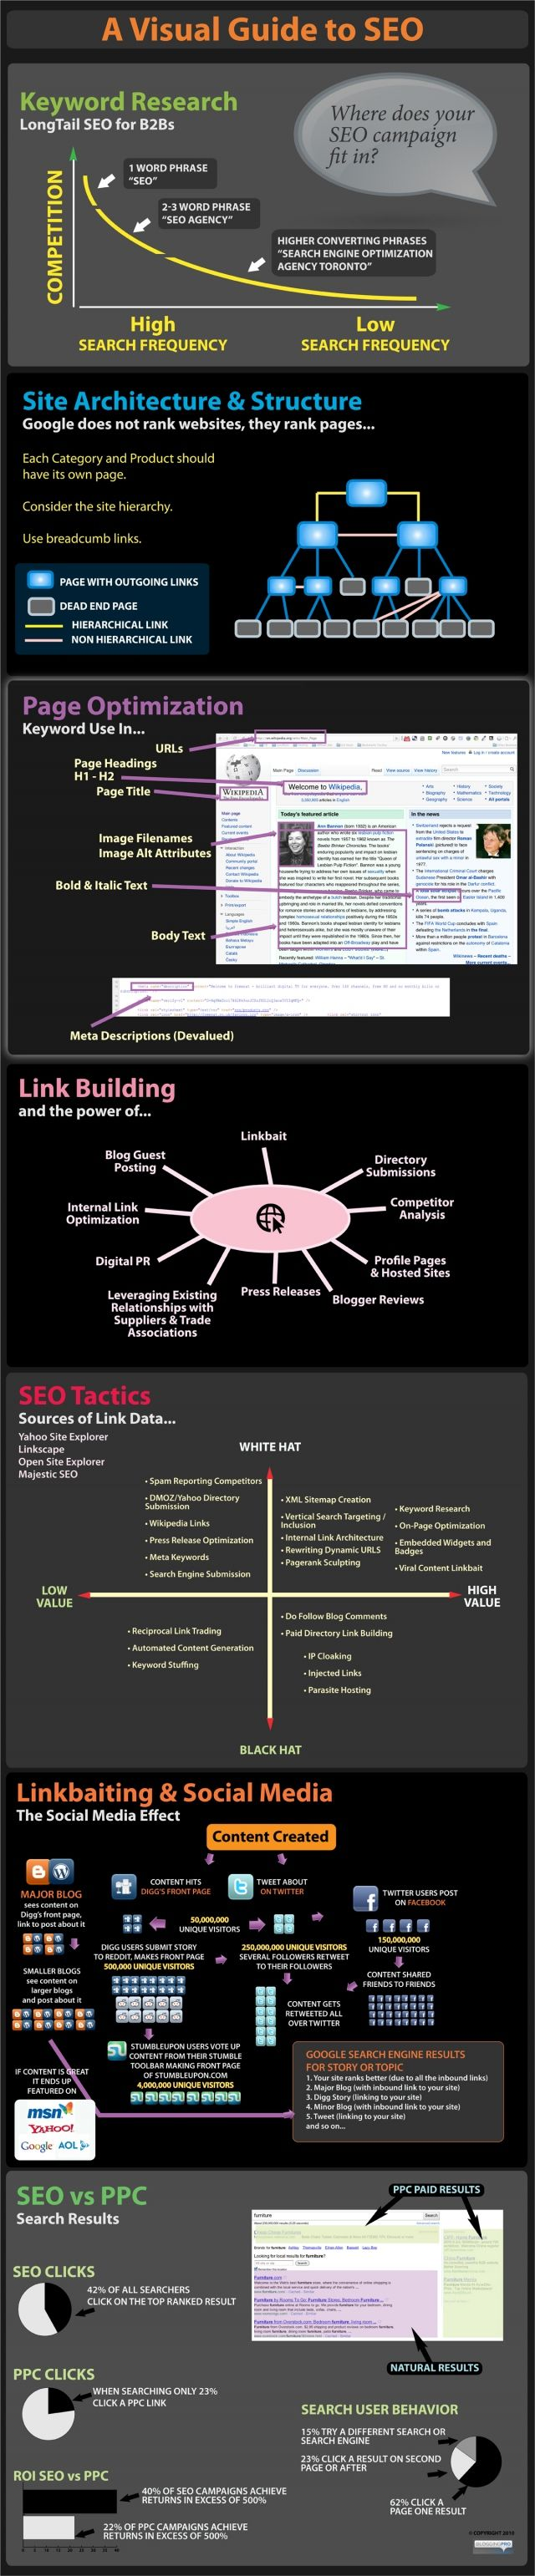 SEO process explained. Really good review of marketing today. Recomended